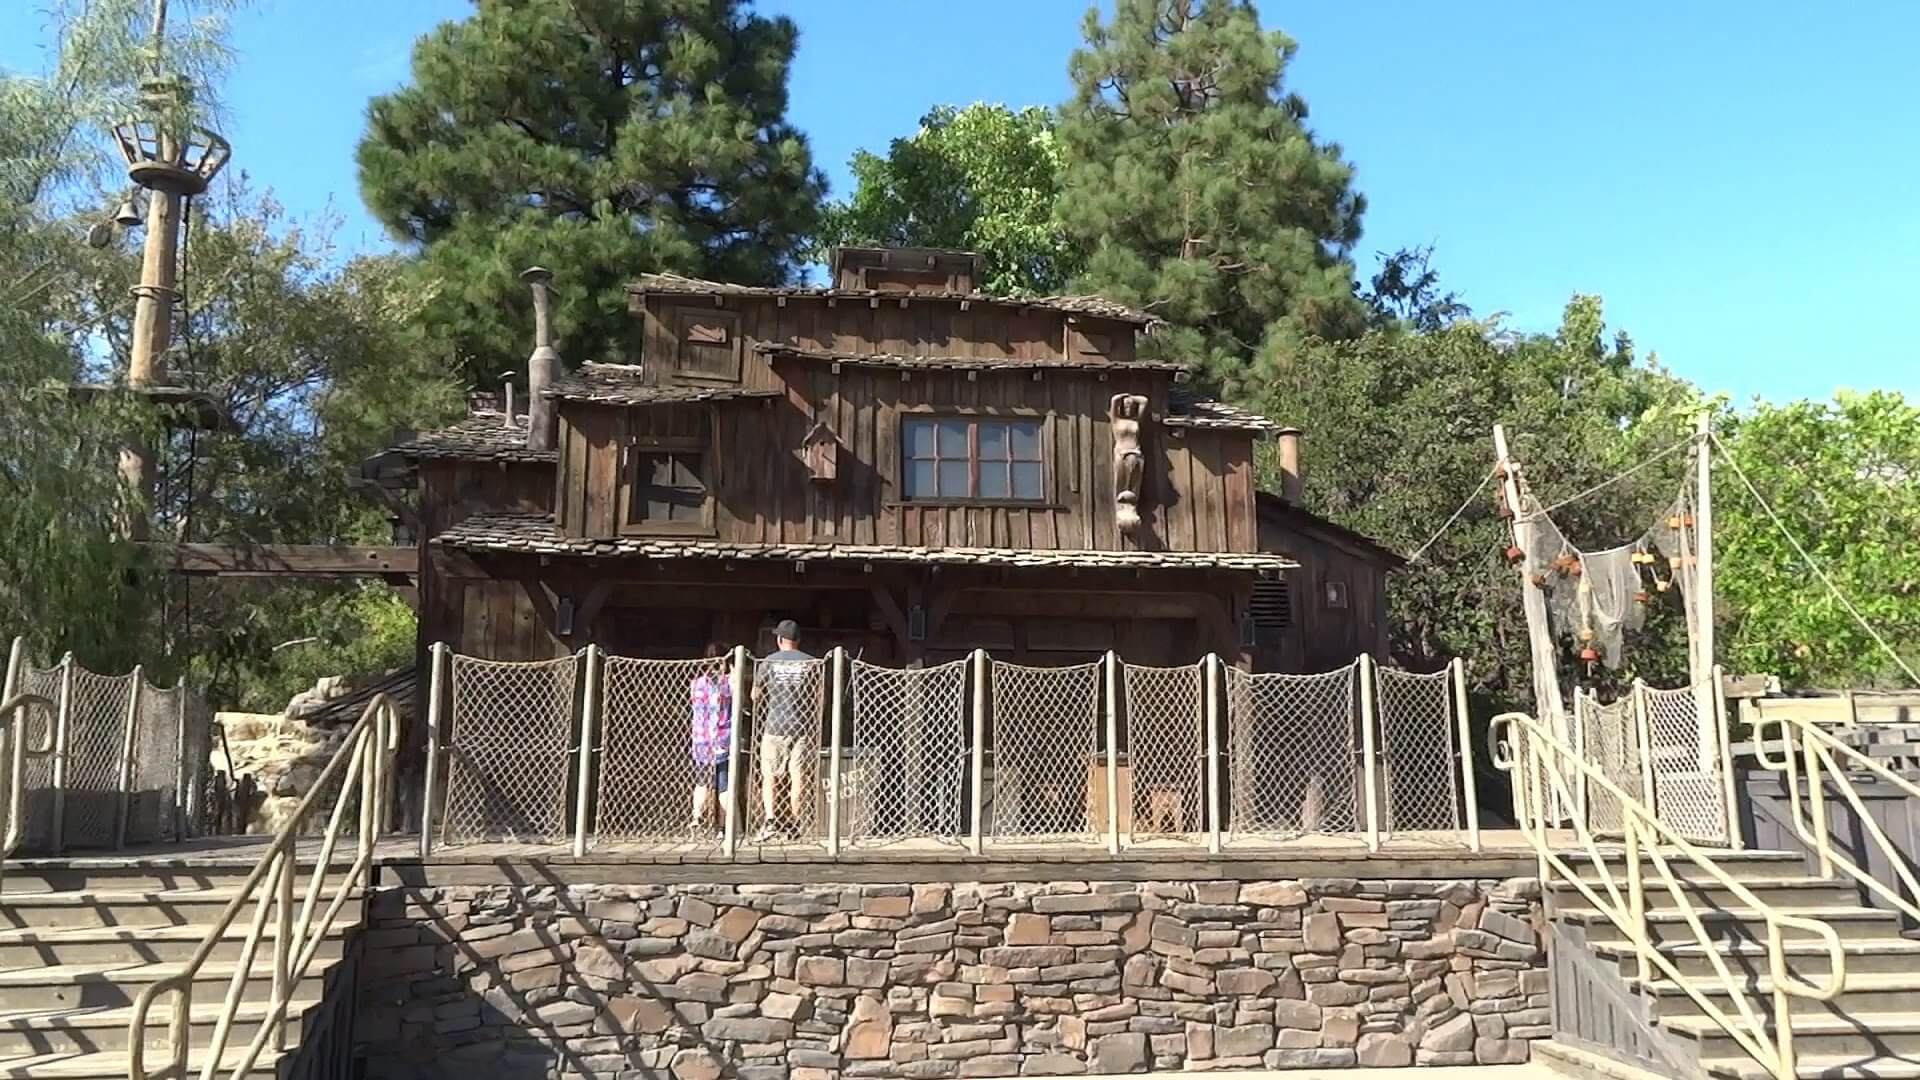 The Pirate's Lair on Tom Sawyer Island